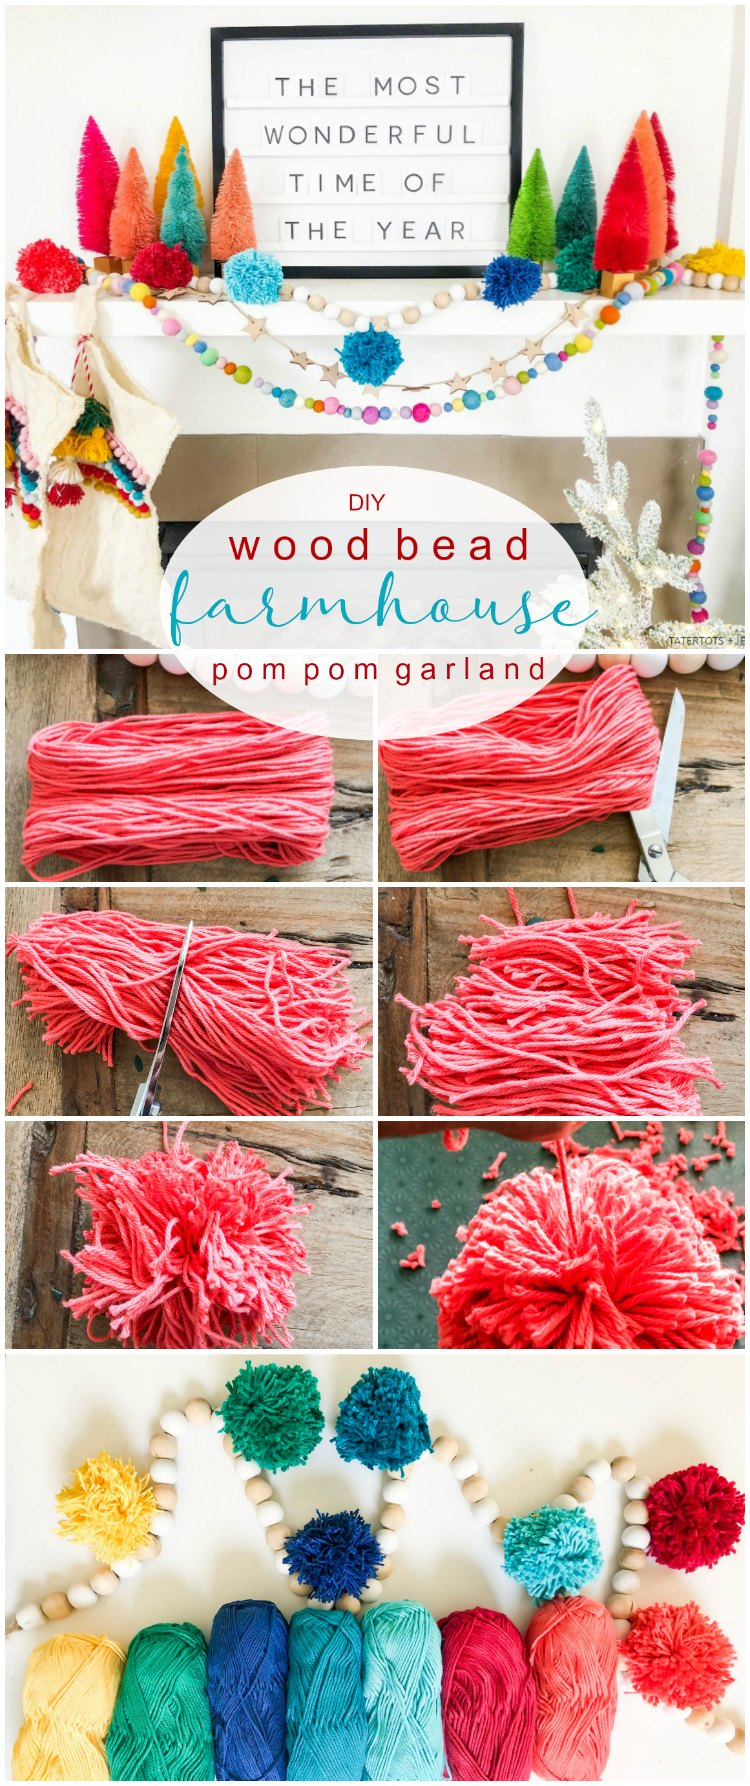 Farmhouse Wood Bead And Pom Pom Garland For The Holidays